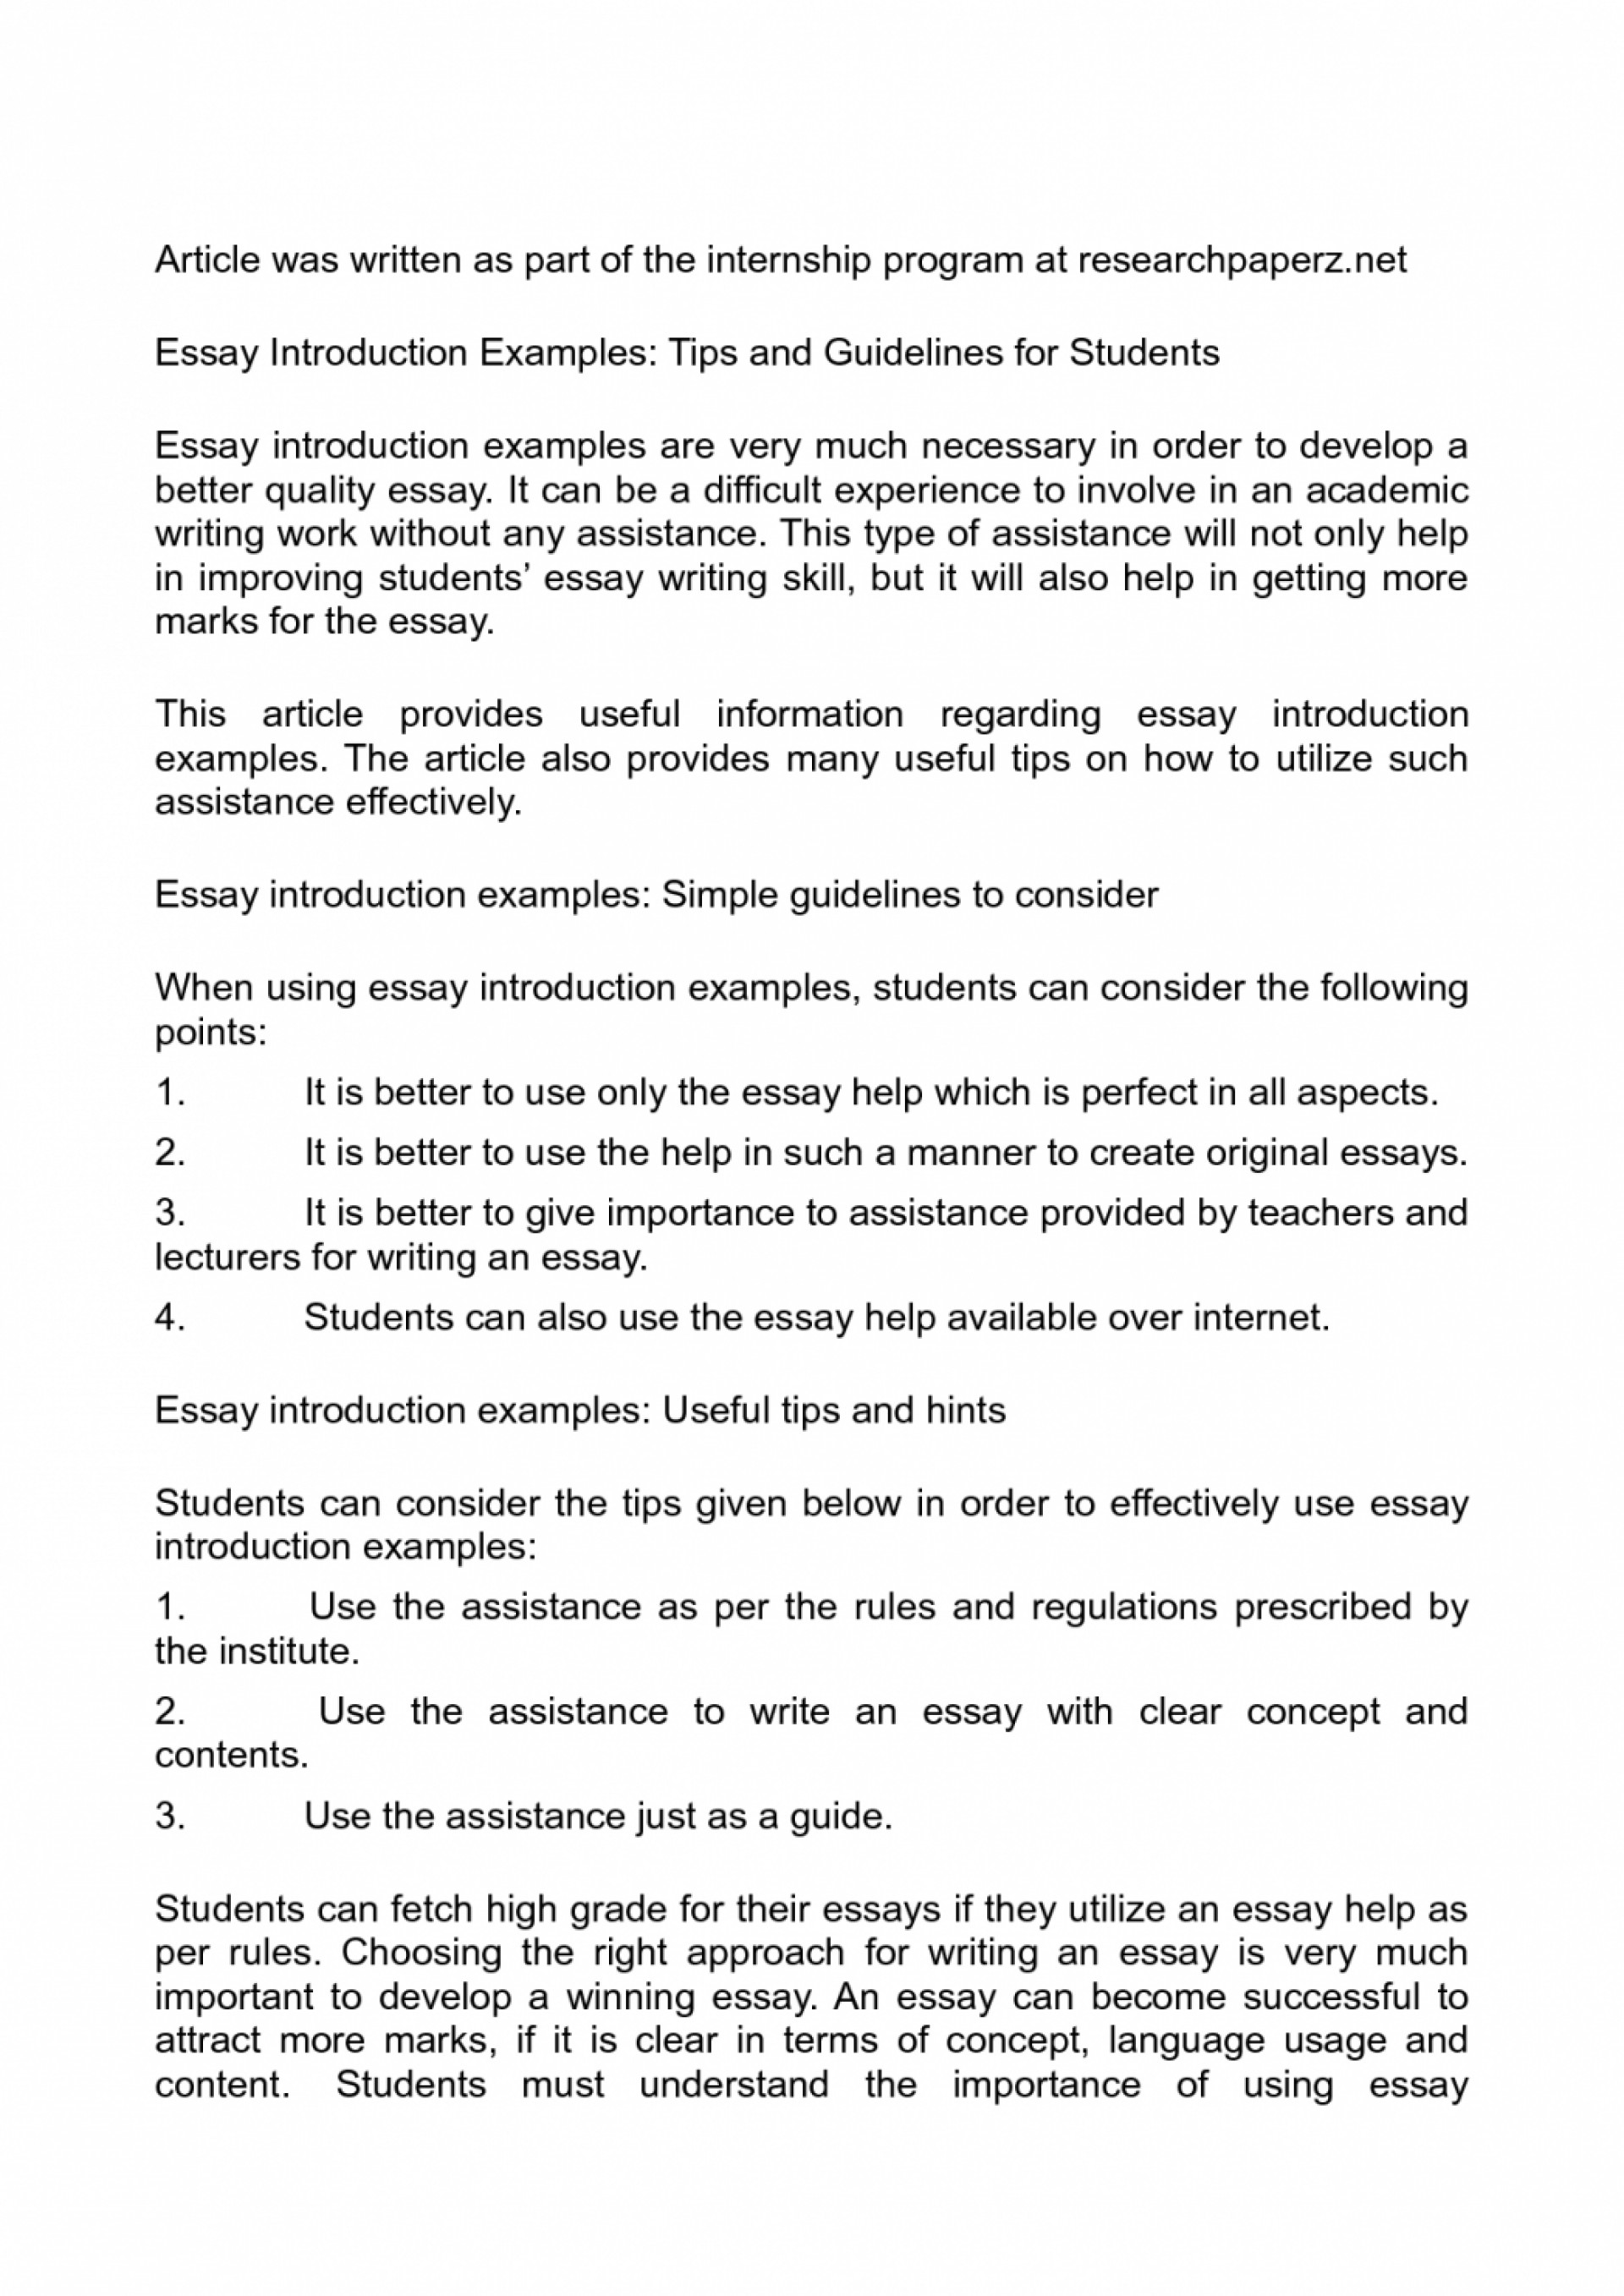 007 Essay Example How To Start Introduction On Good Paragraph An Eyx5t Write University For In Ielts Academic Analytical Argumentative Hook Examples Great Intro 1048x1482 Awesome A Paper College Biography About Yourself 1920